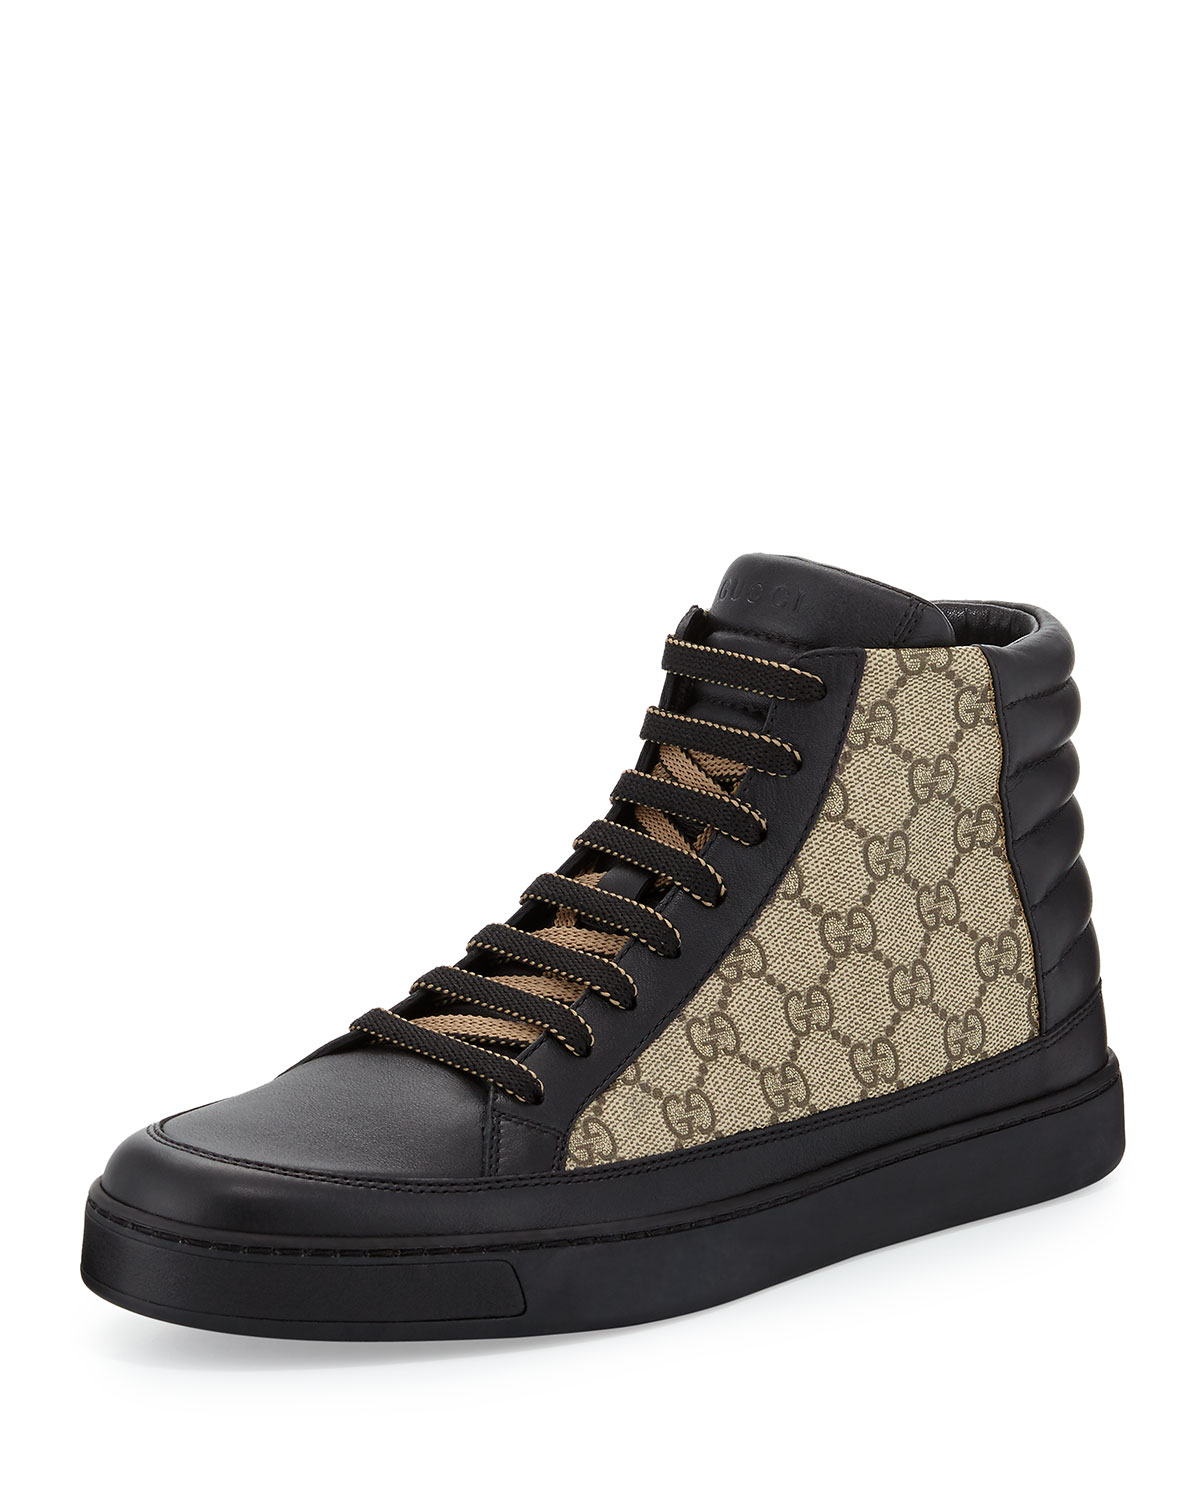 gucci common leather high top sneaker in black lyst. Black Bedroom Furniture Sets. Home Design Ideas